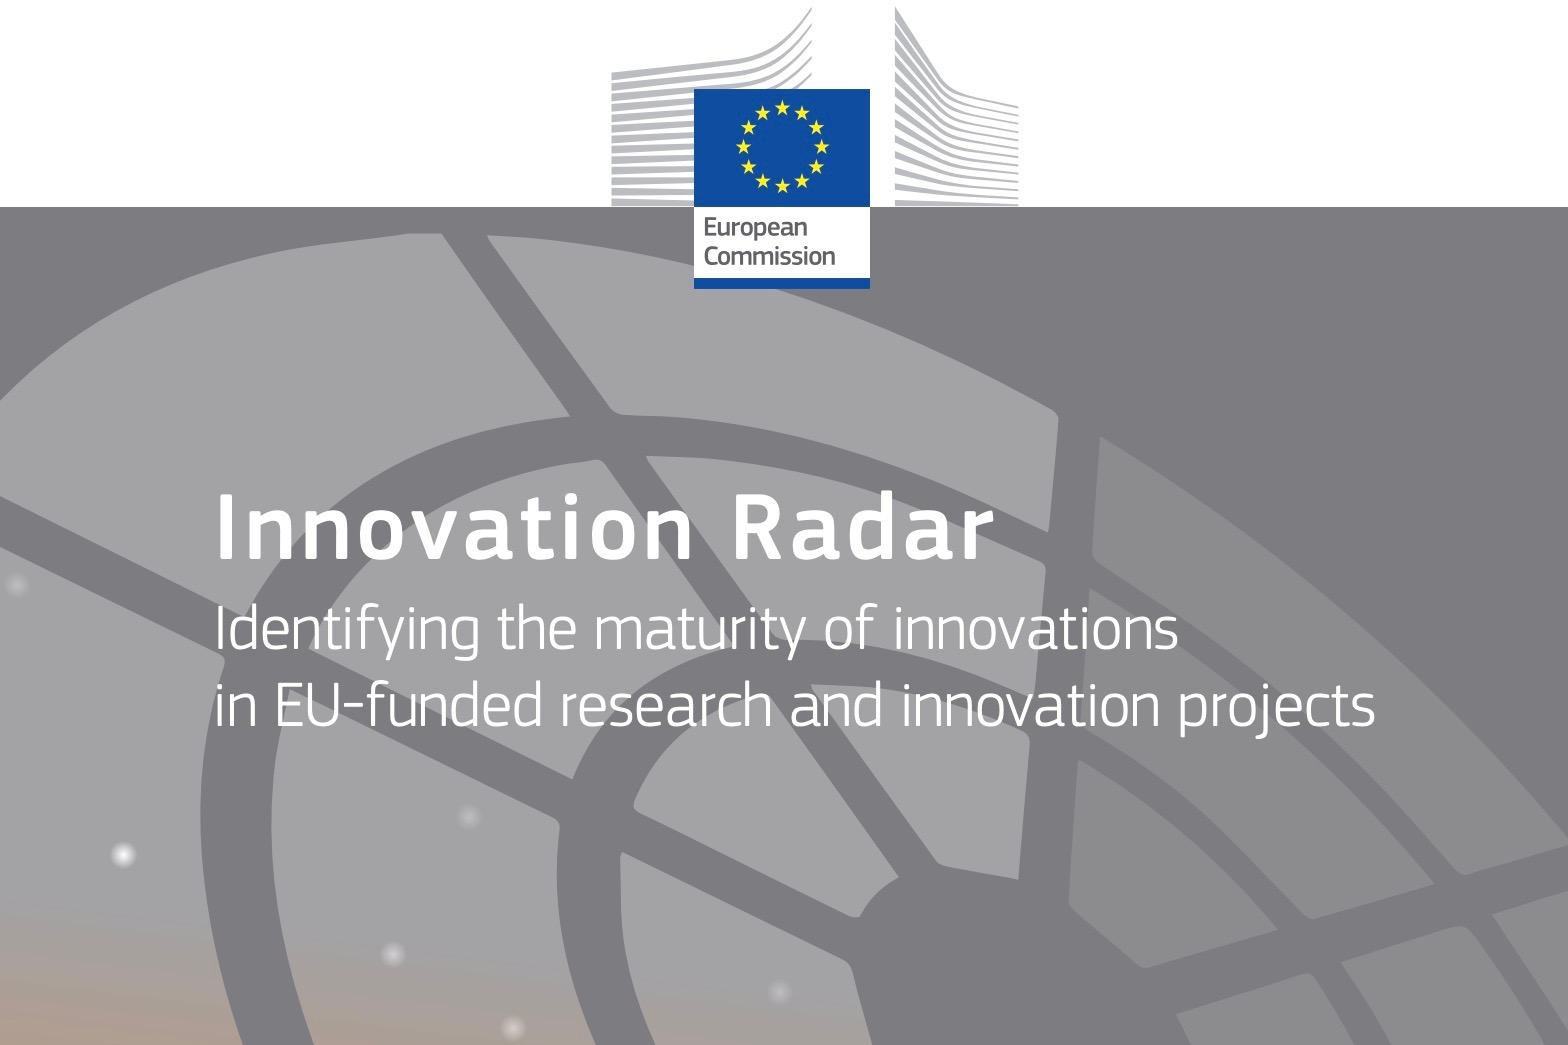 Innovation Radar - European Commission